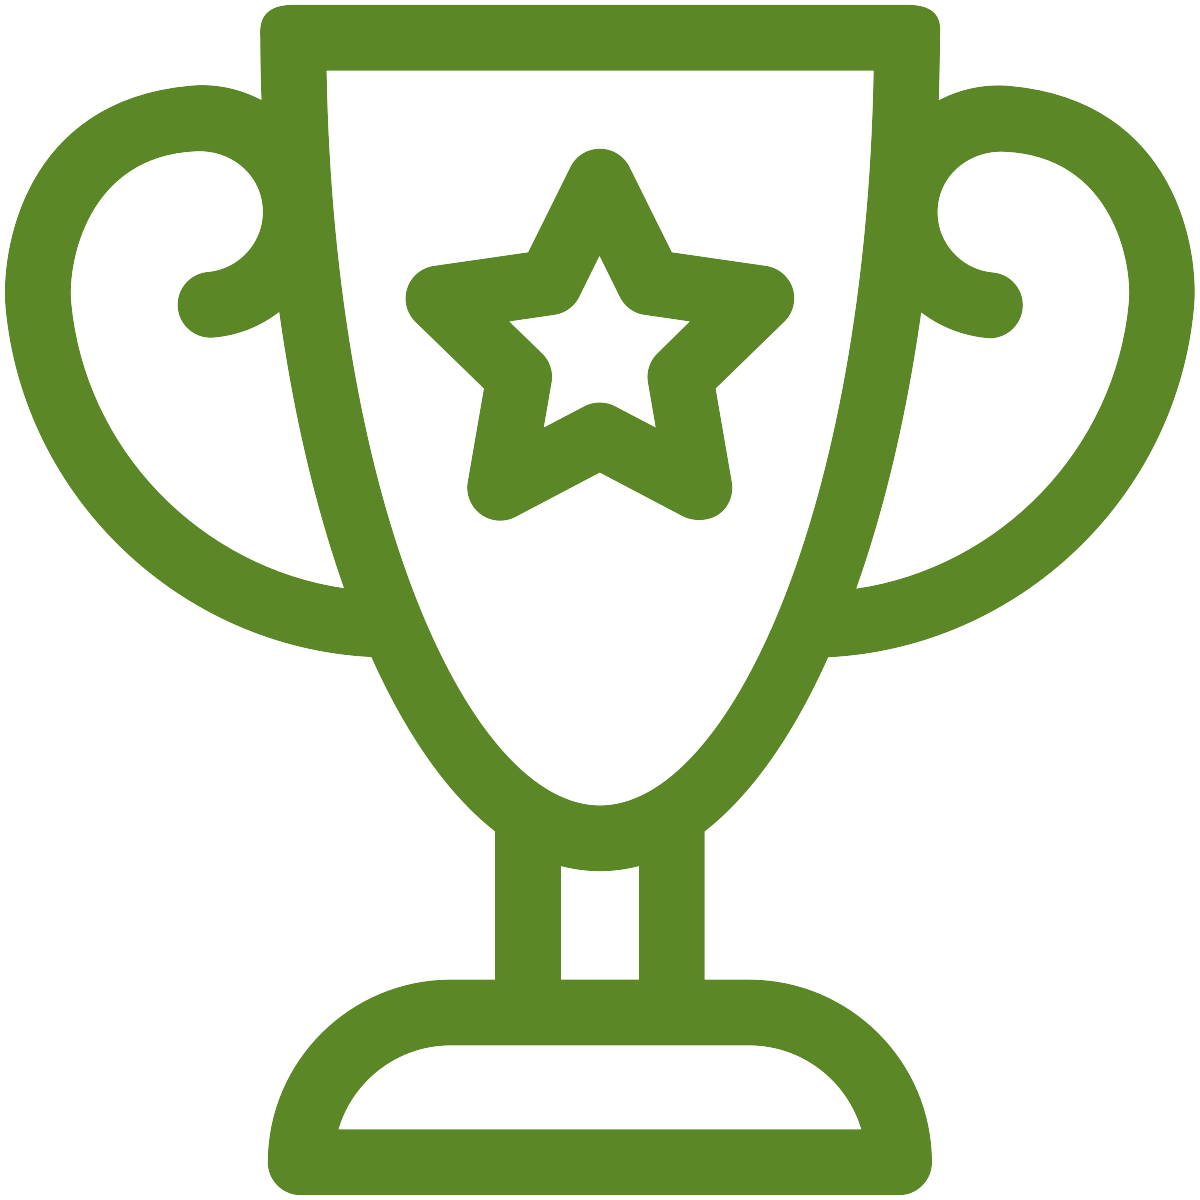 trophy icon in green